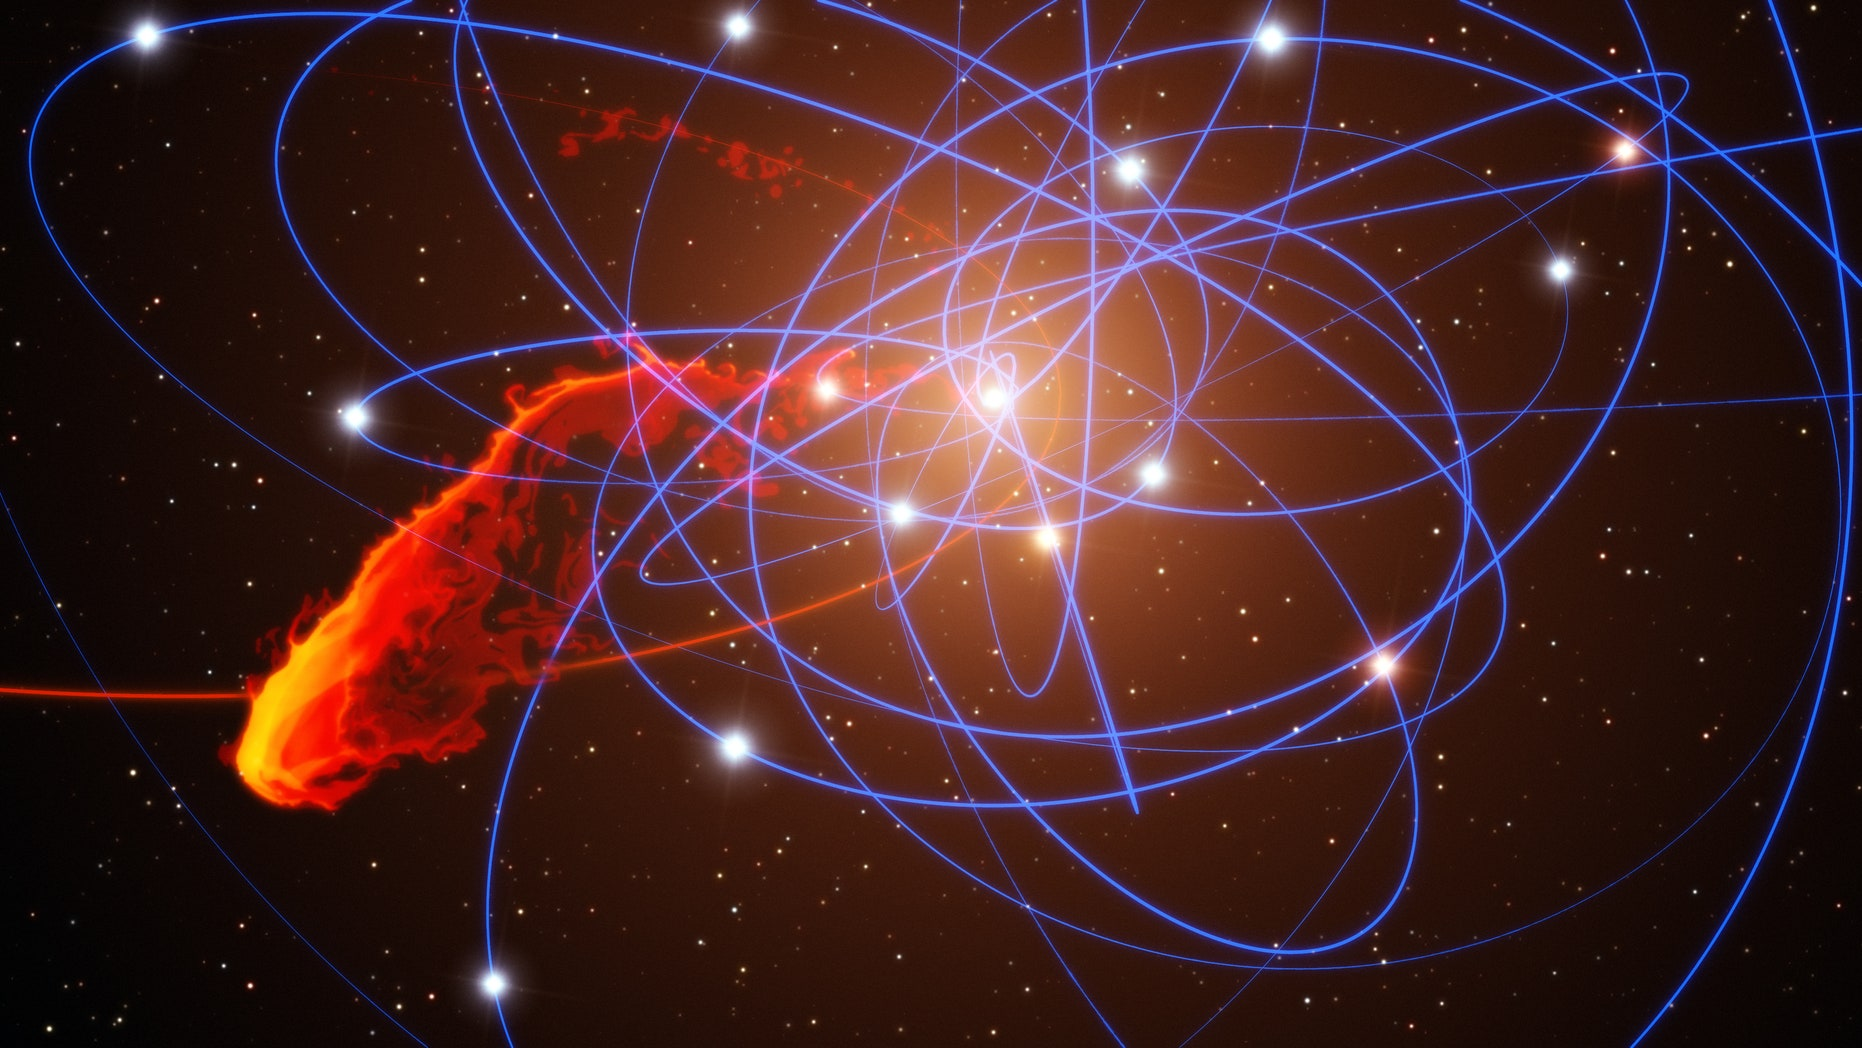 """A simulation of the gas cloud G2's encounter with the supermassive black hole Sgr A*. The blue lines mark the orbits of the so-called """"S"""" stars that are in close orbits around the black hole."""